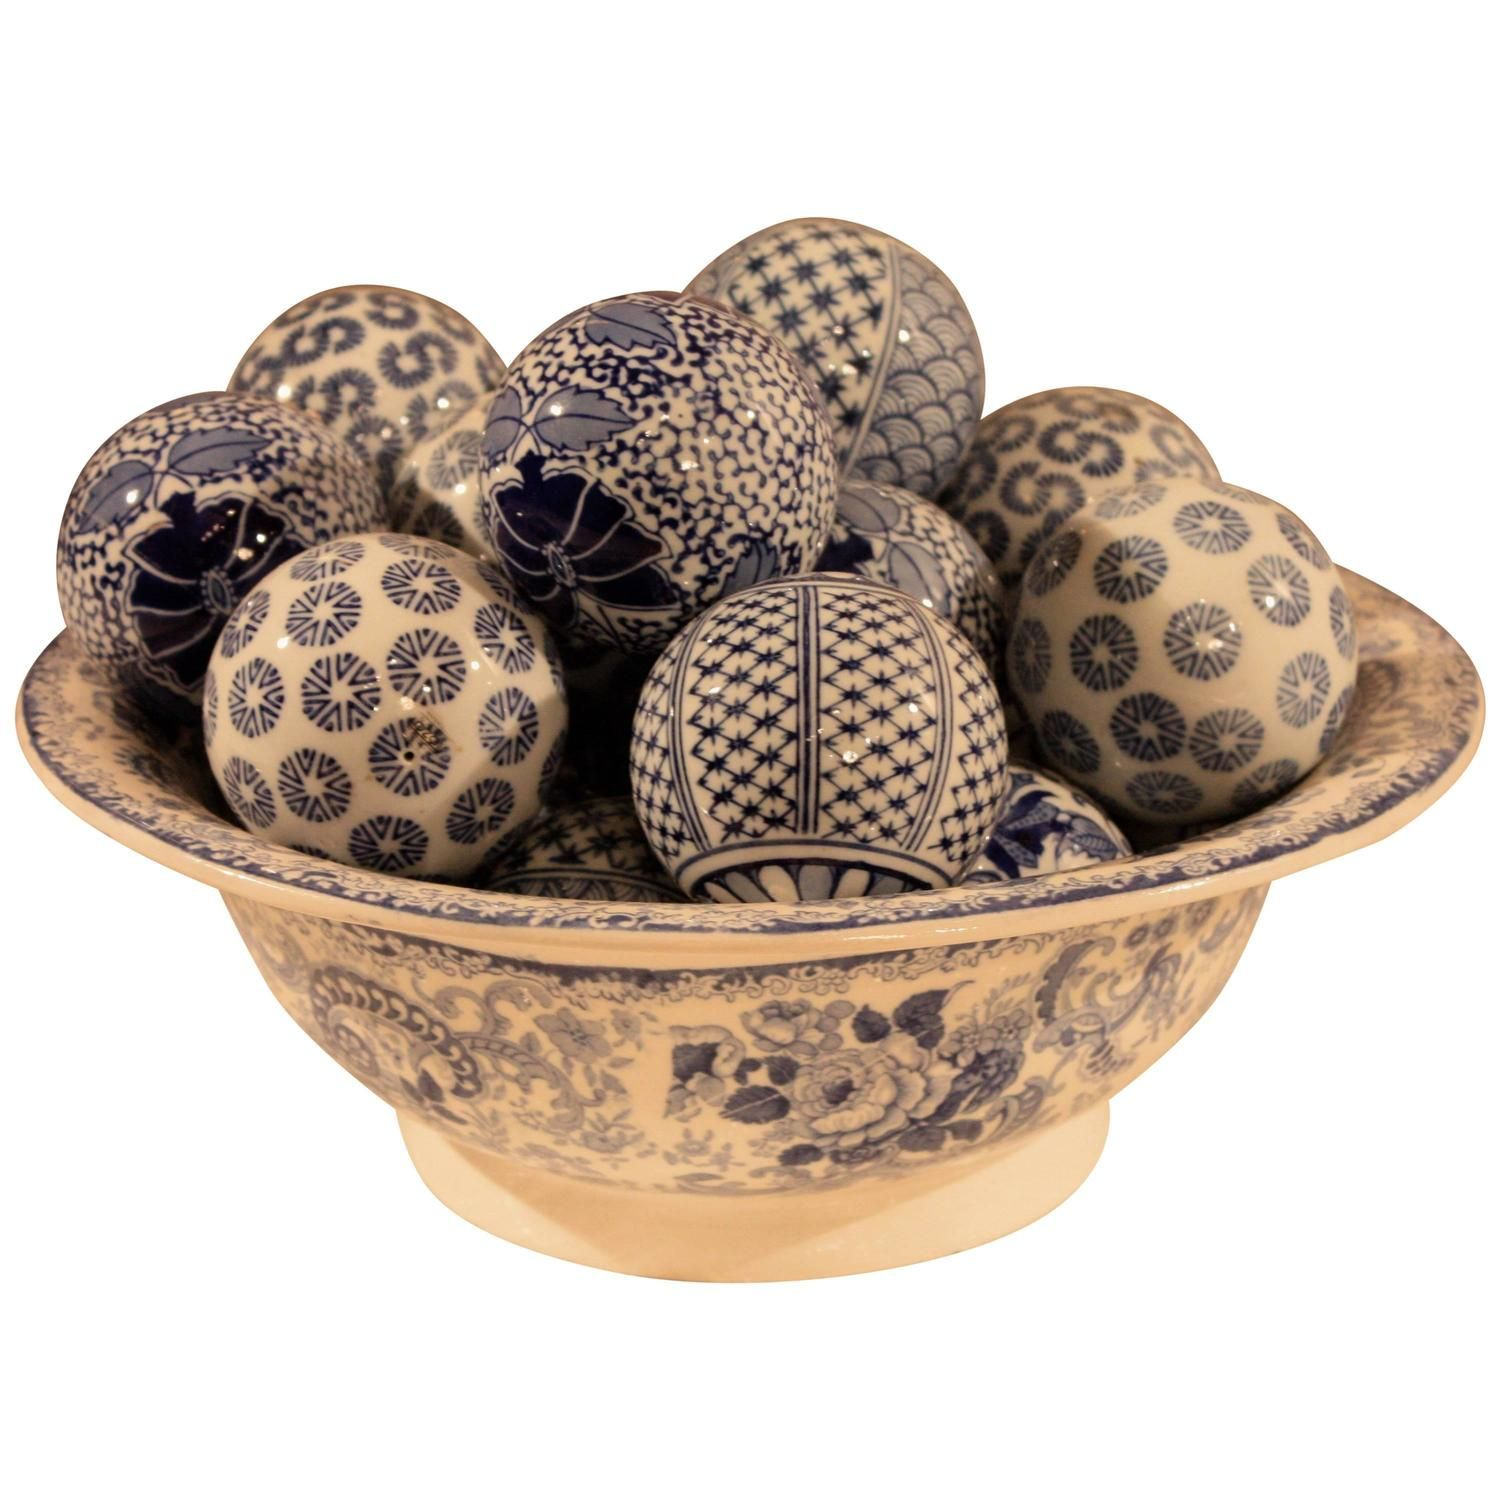 Decorative Balls For Bowls Blue And White Ceramic Bowl With Decorative Balls  My 1Stdibs